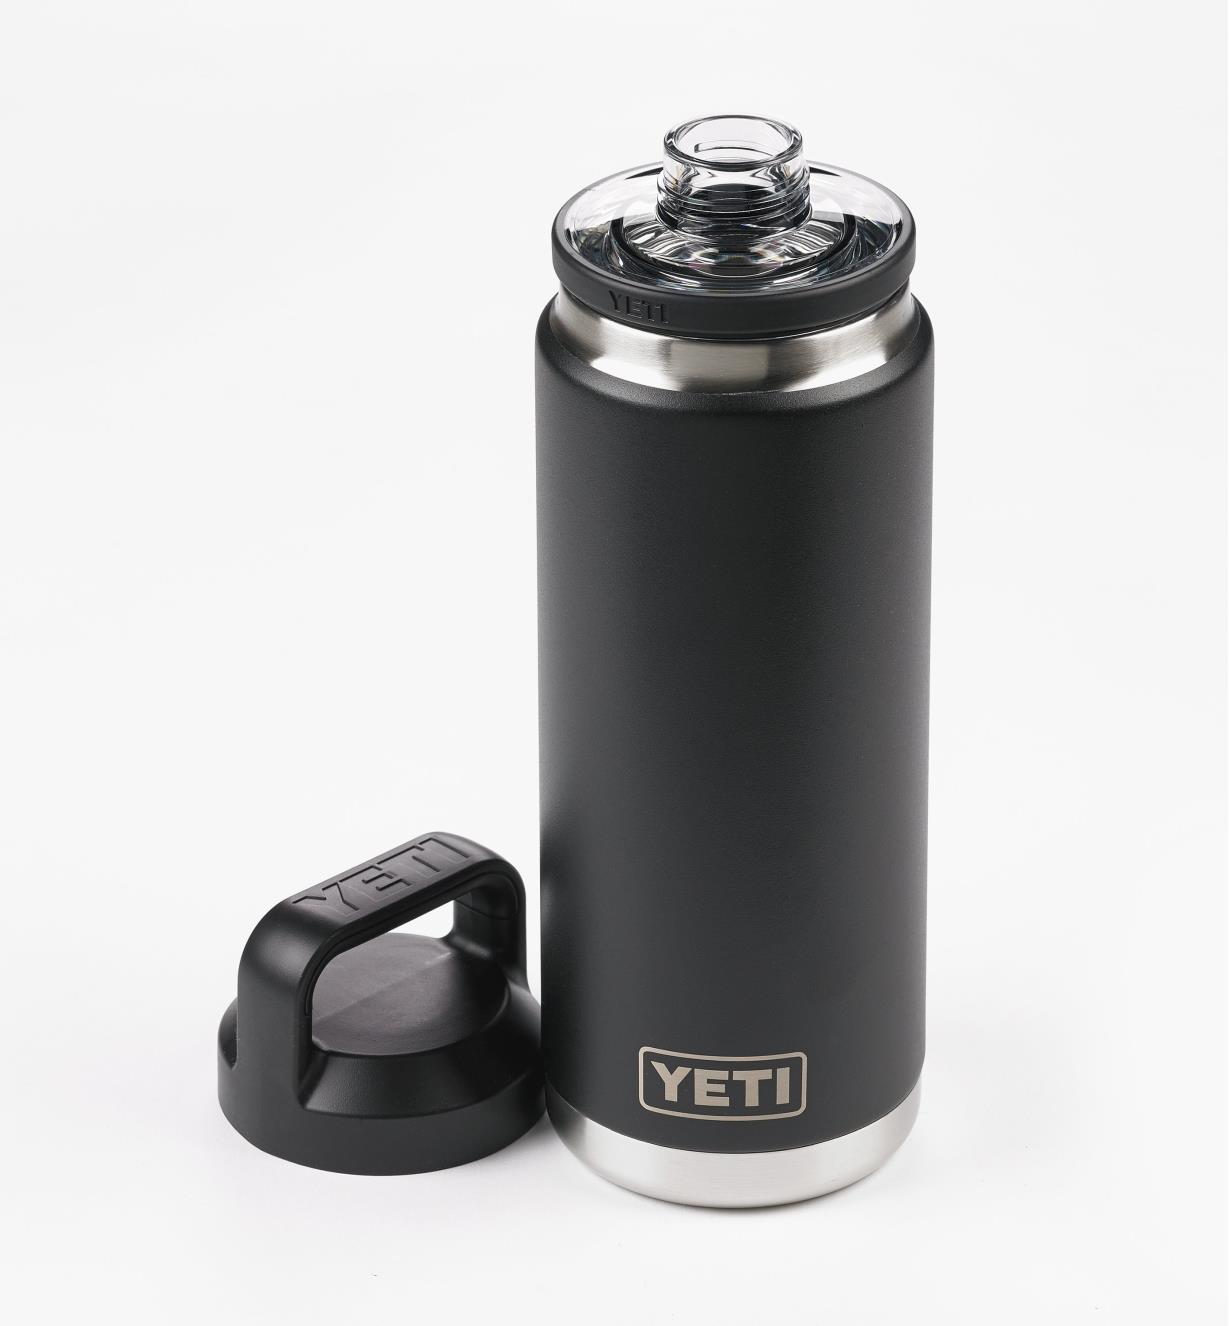 74K0060 - 26 oz Yeti Bottle, Black